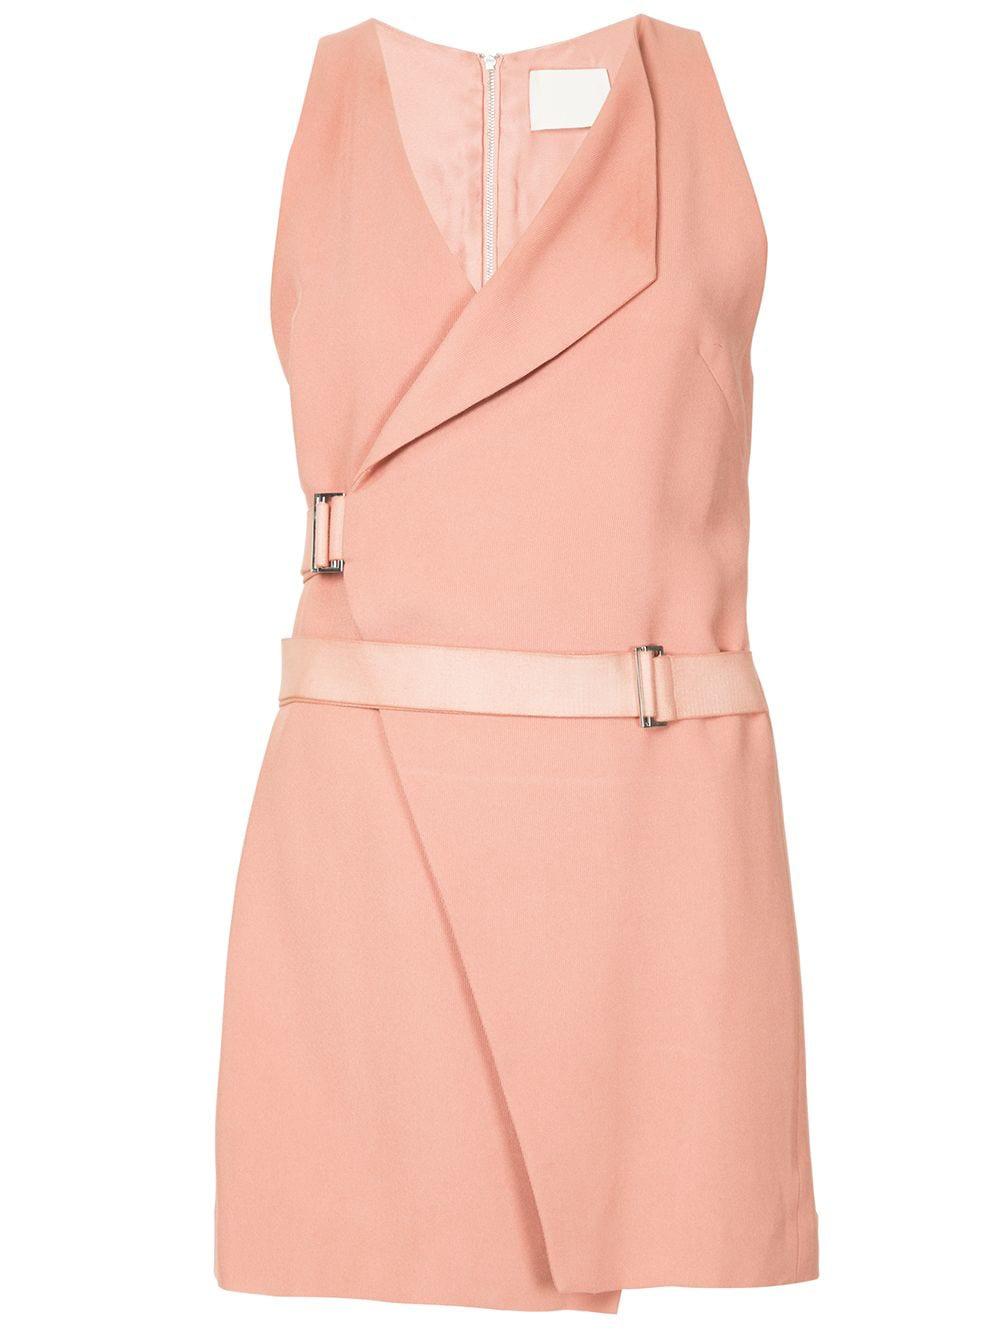 58f78e385ece Dion Lee Holster Mini Wrap Dress - Farfetch In Pink